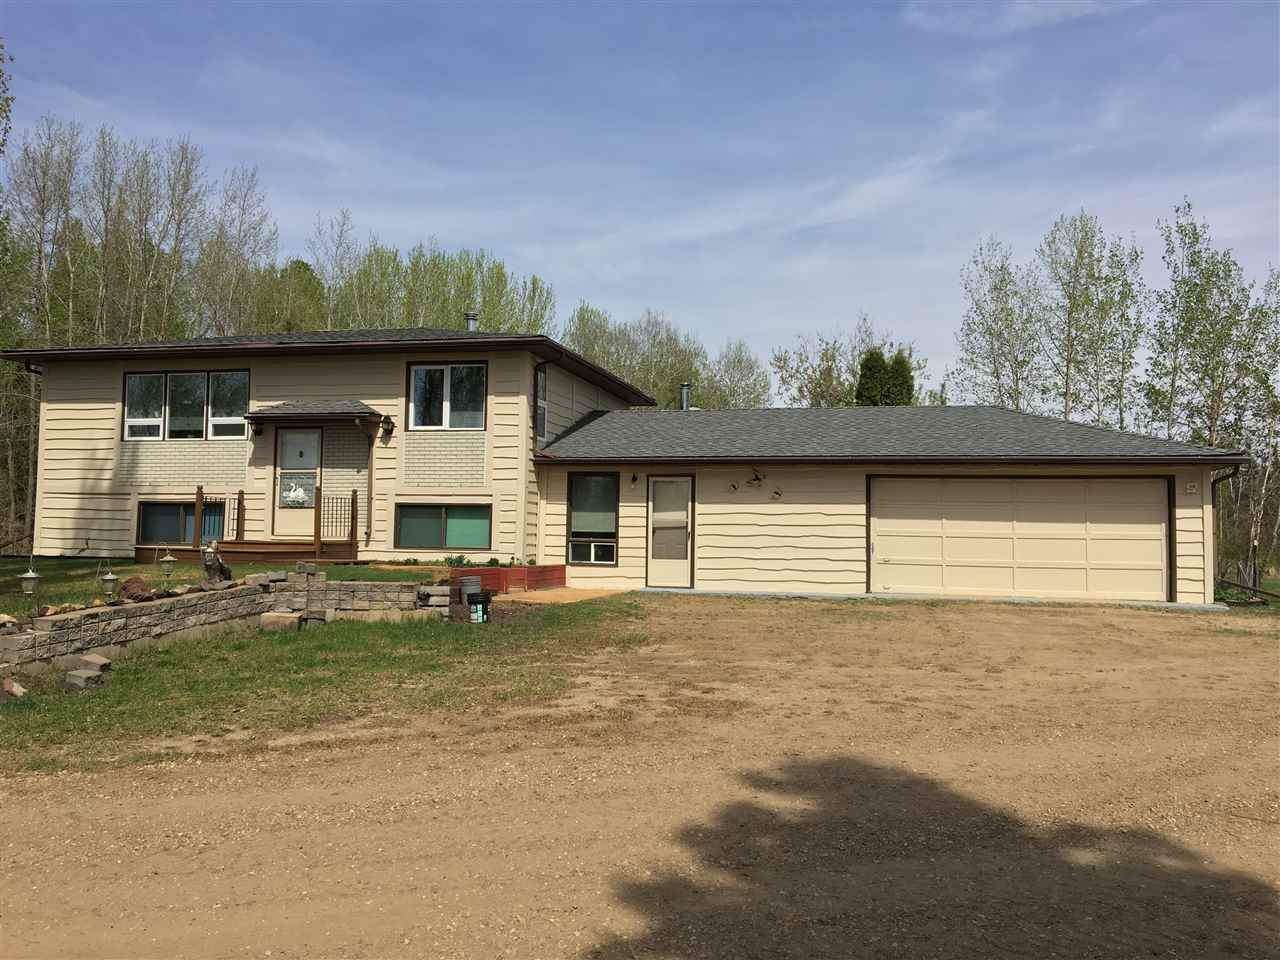 Main Photo: 623043 RR 250: Rural Athabasca County House for sale : MLS®# E4114737